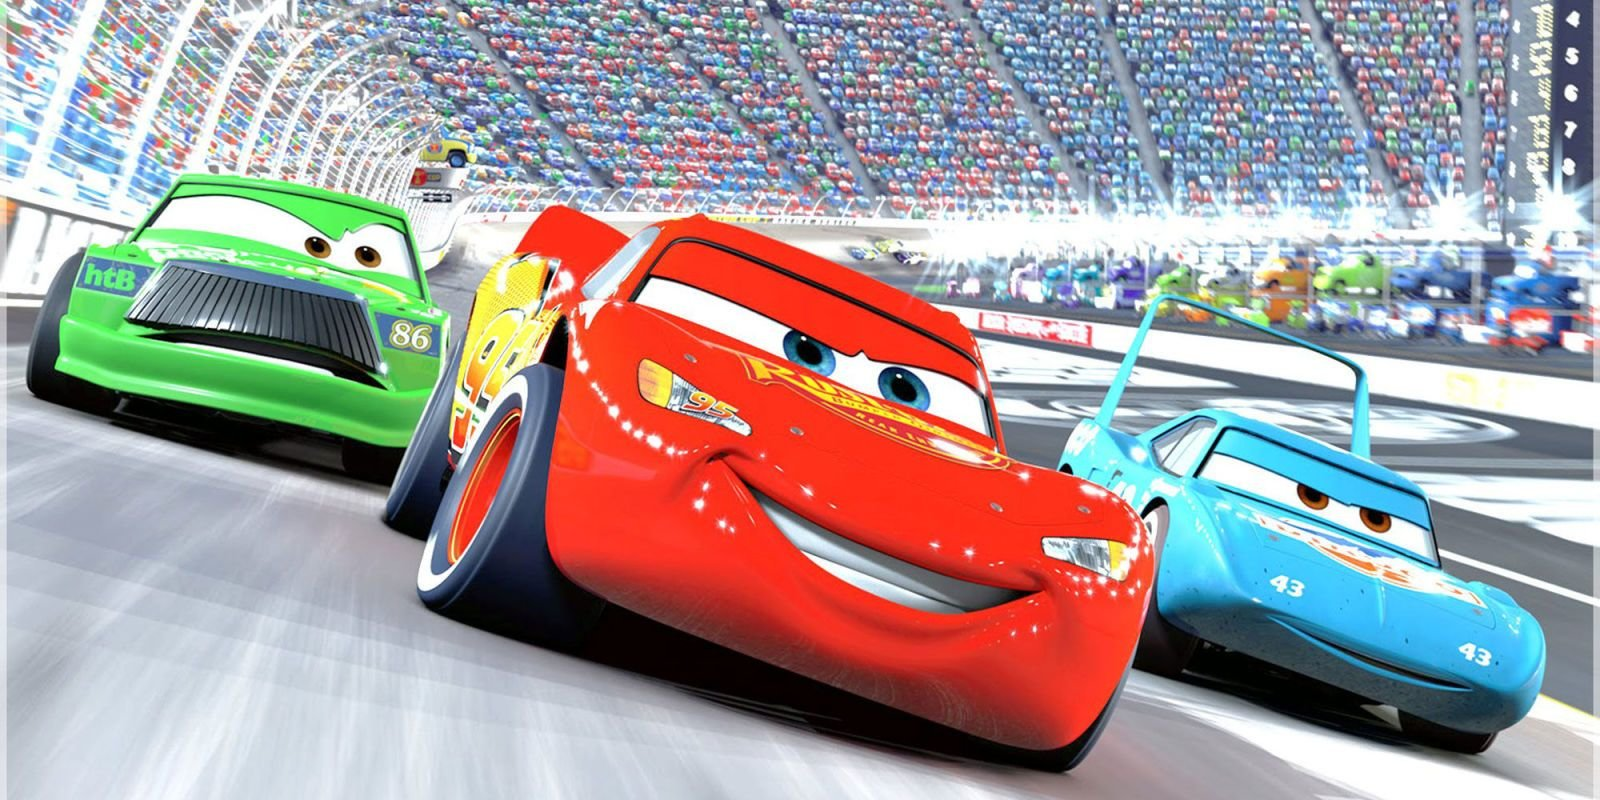 Latest New Cars 3 Trailer Is Like A Futuristic Rocky As Lightning Free Download Original 1024 x 768